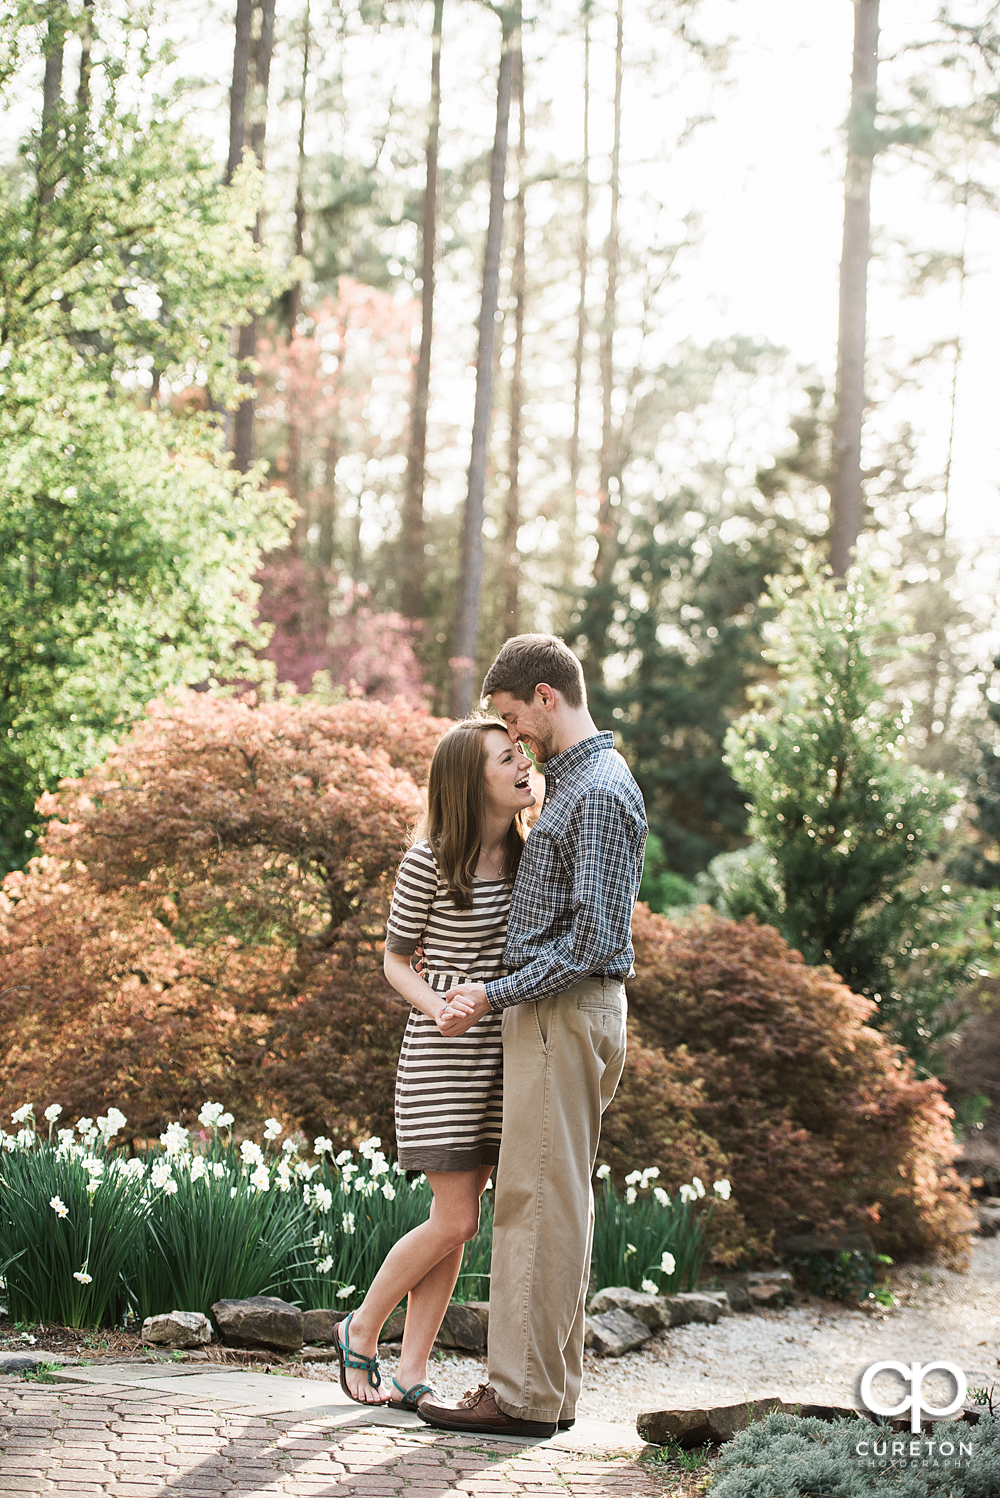 Engaged couple laughing during an engagement session at the Botanical Gardens in Clemson.